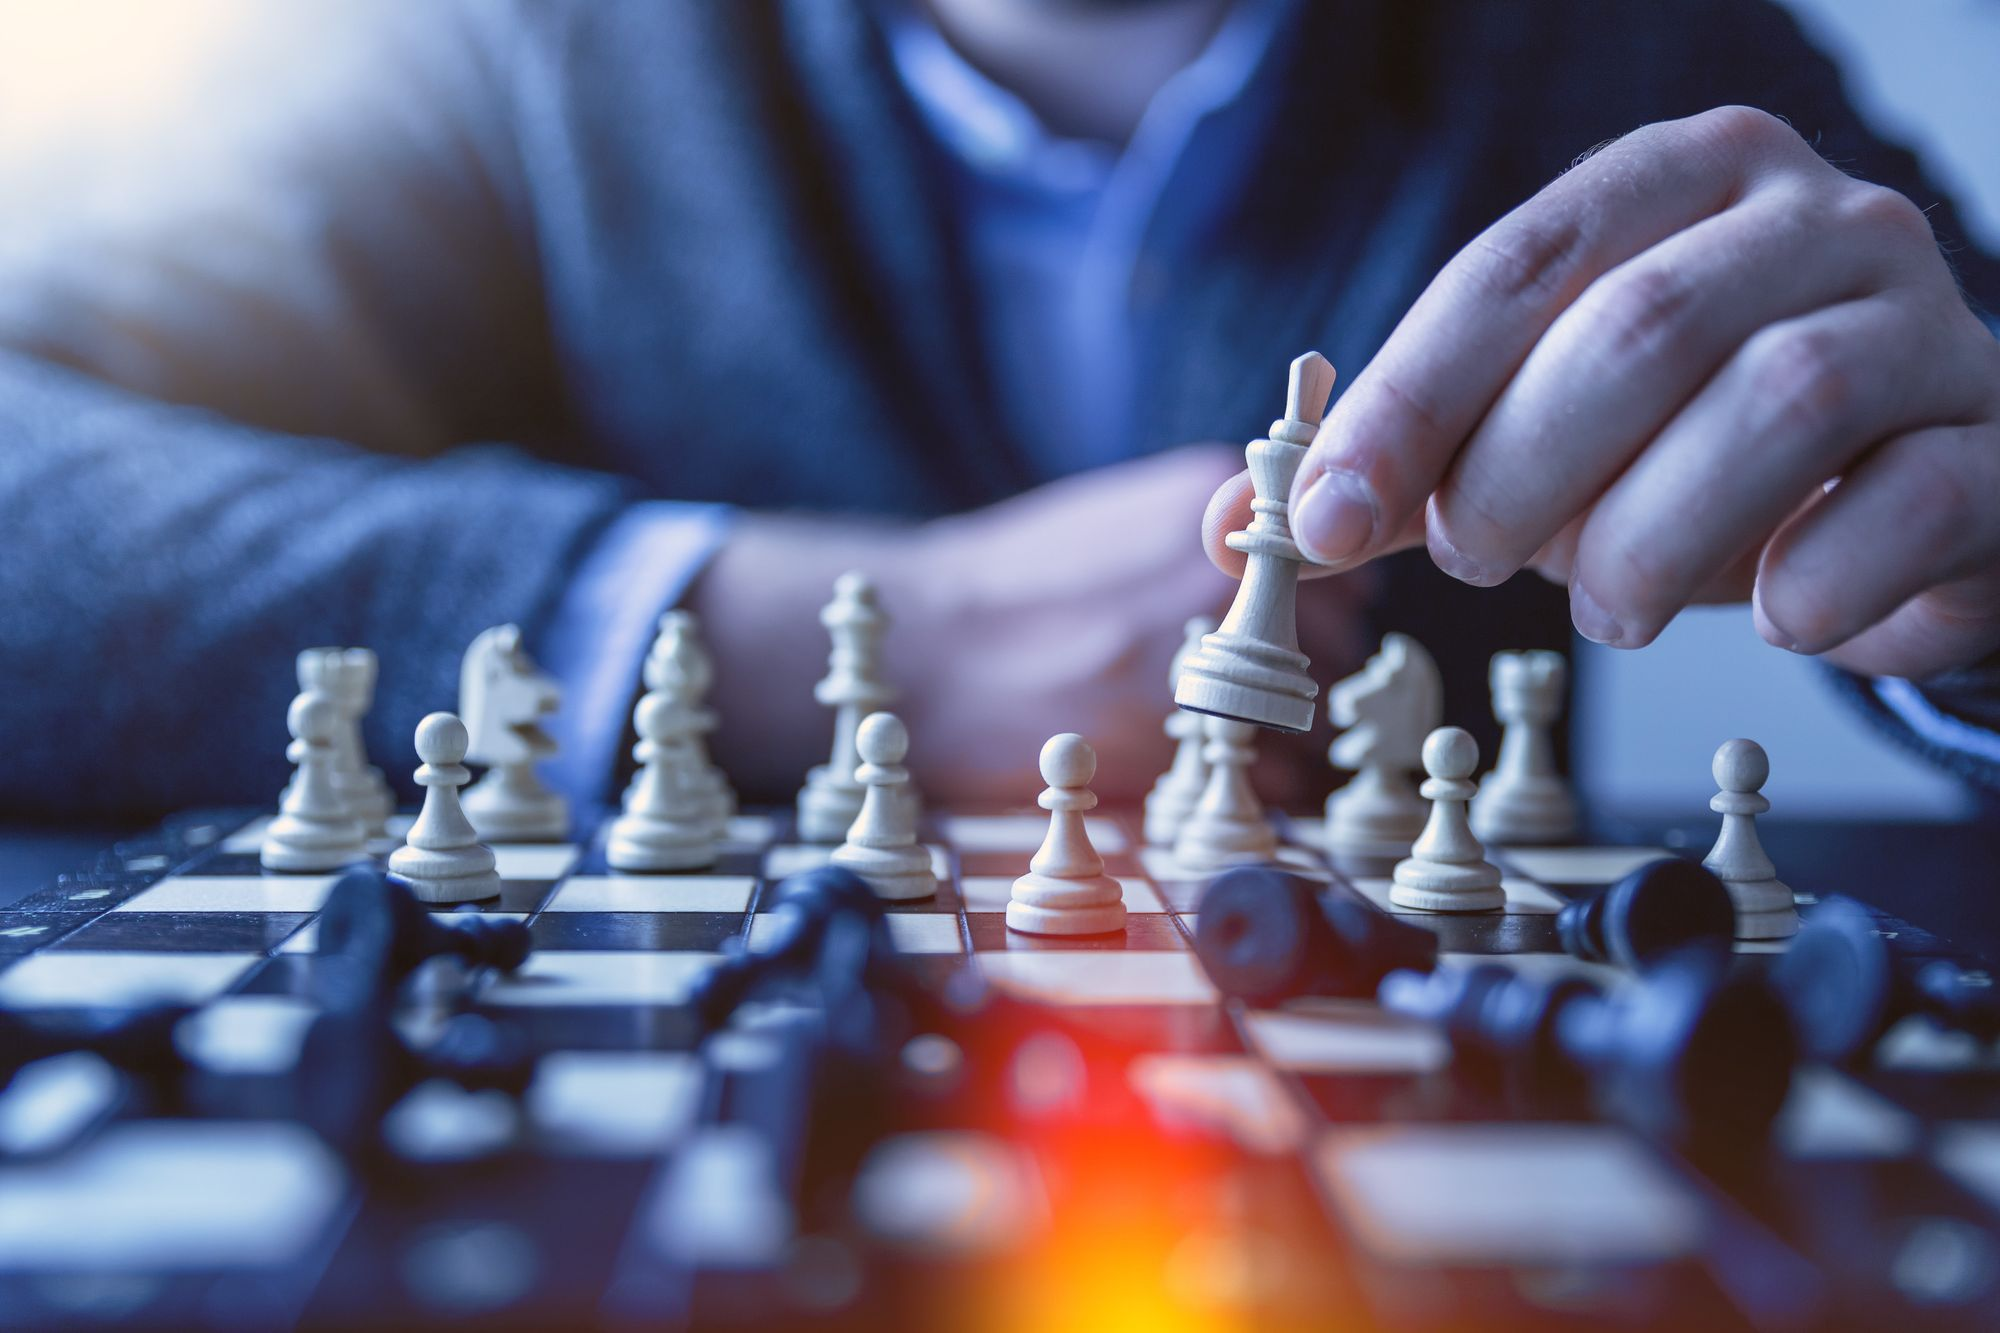 Building a product is not the same as playing a chess